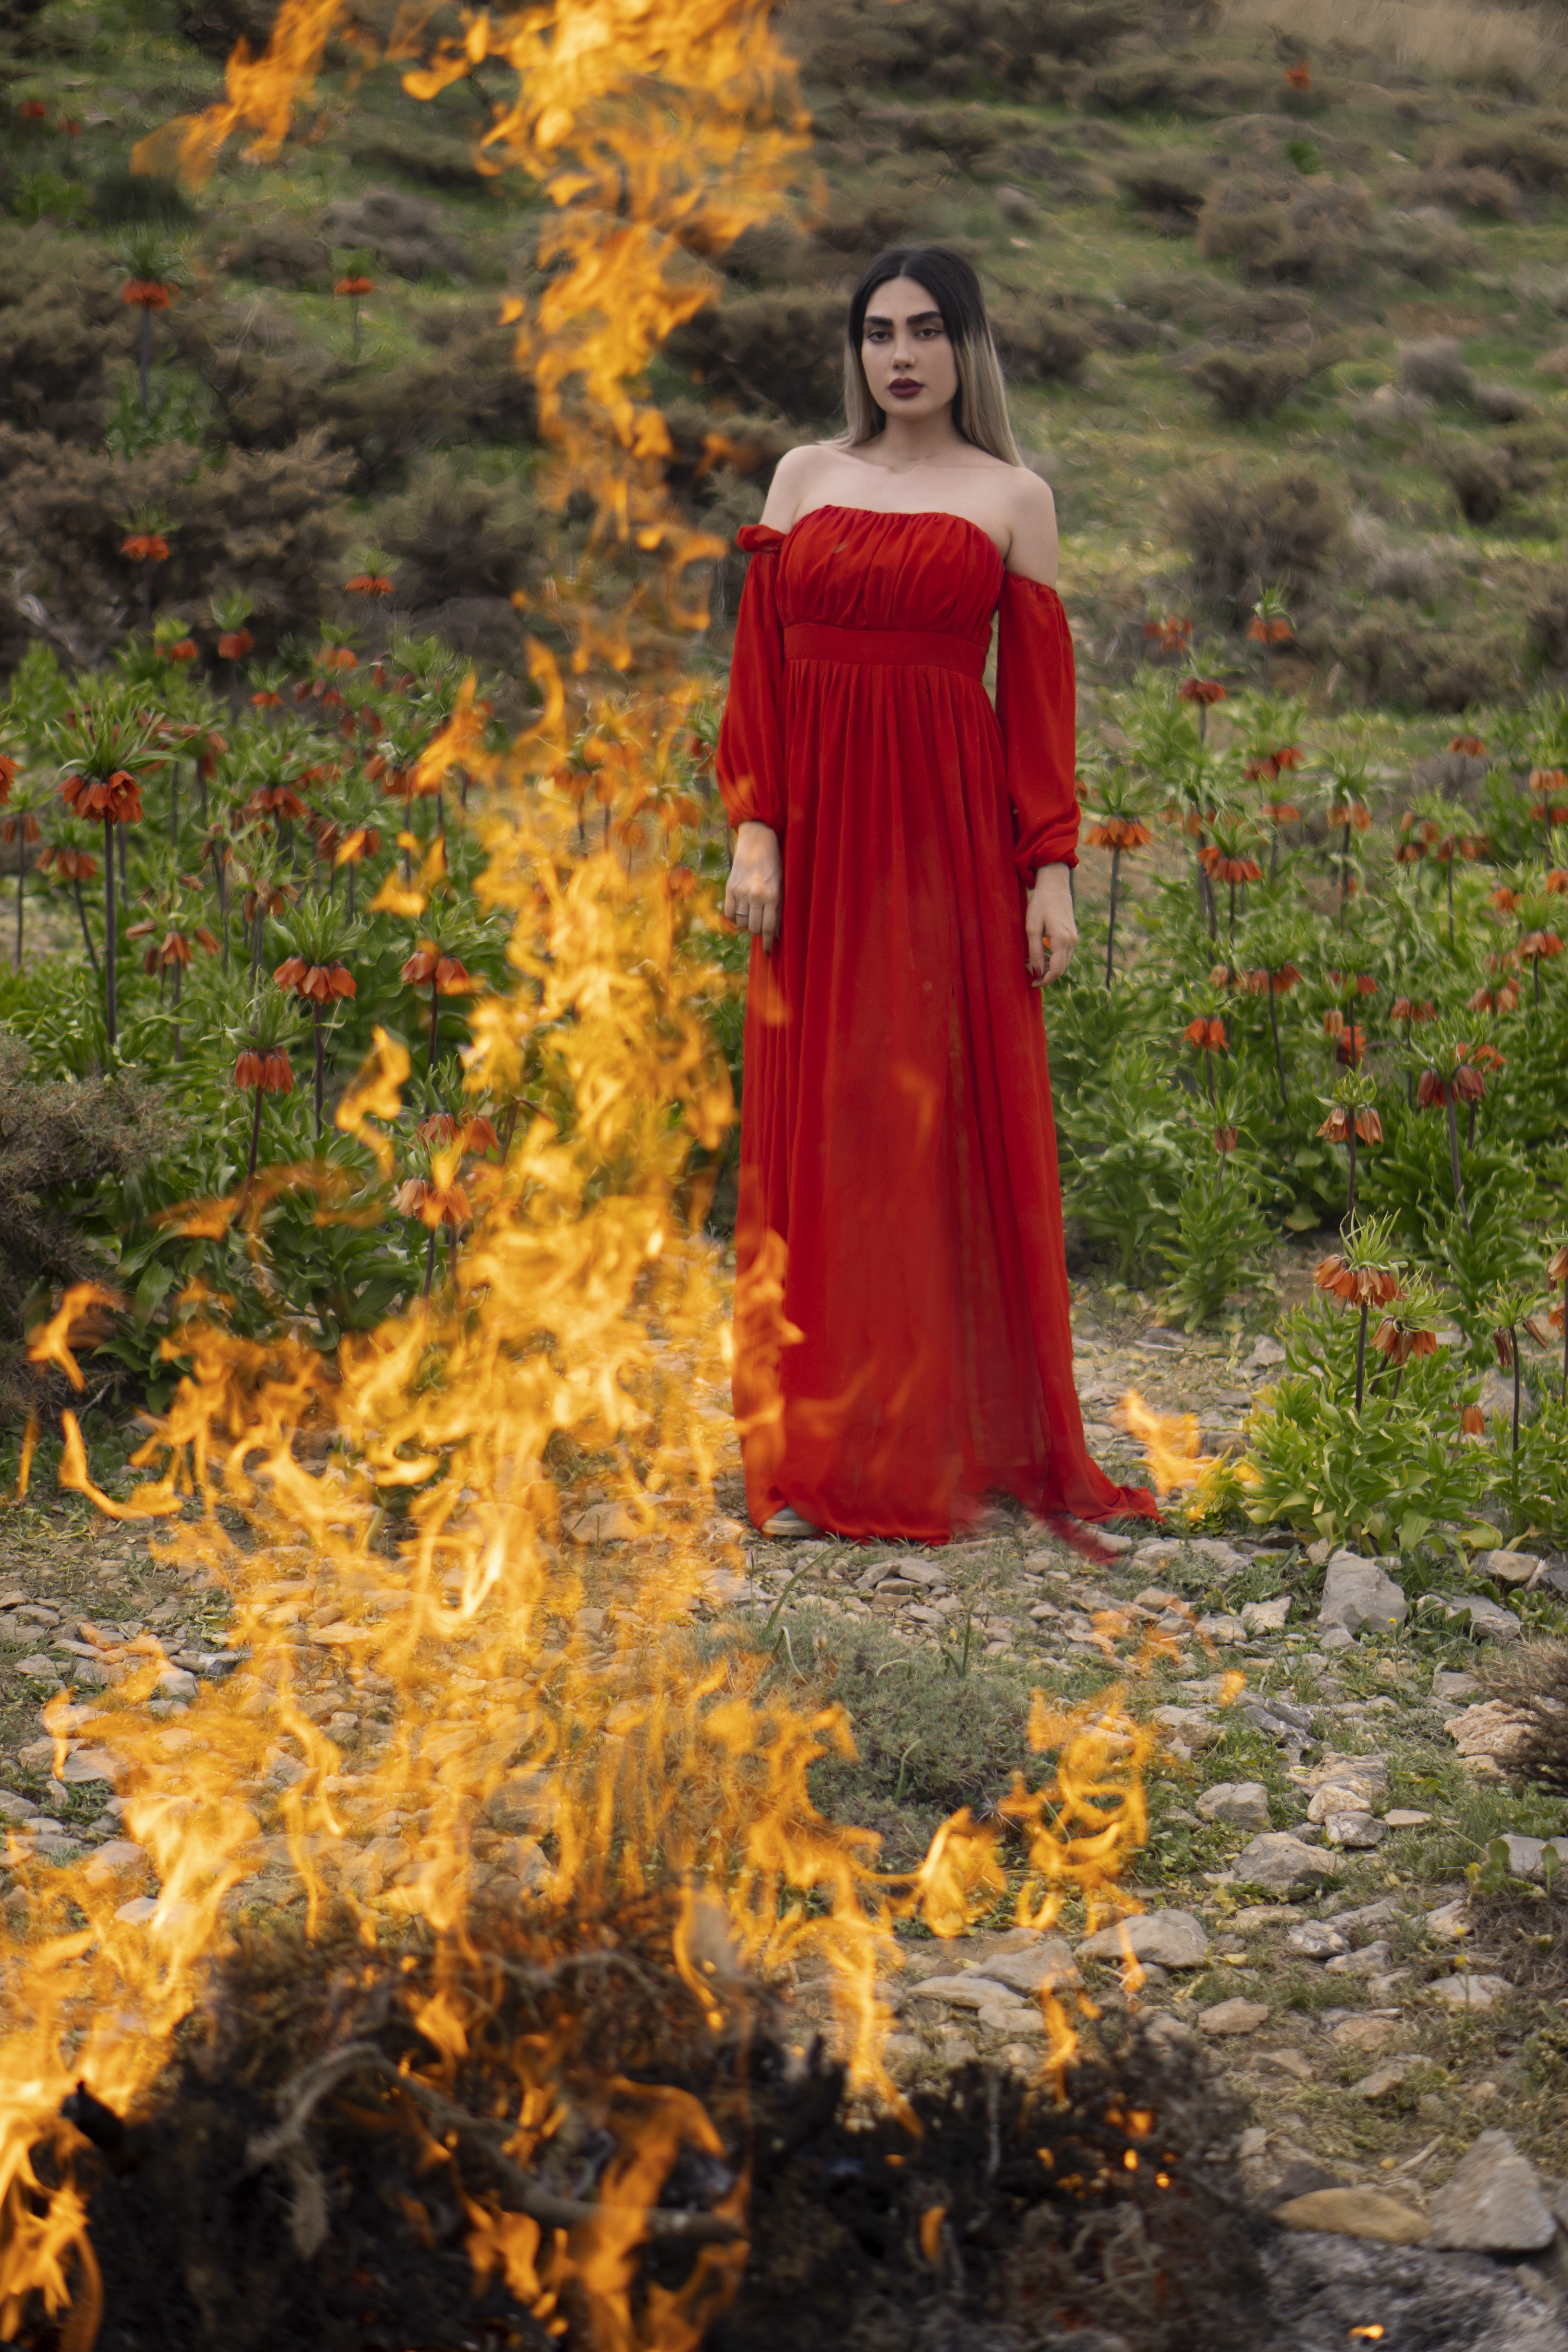 A woman in a red dress stands behind a fire in a field of red flowers.